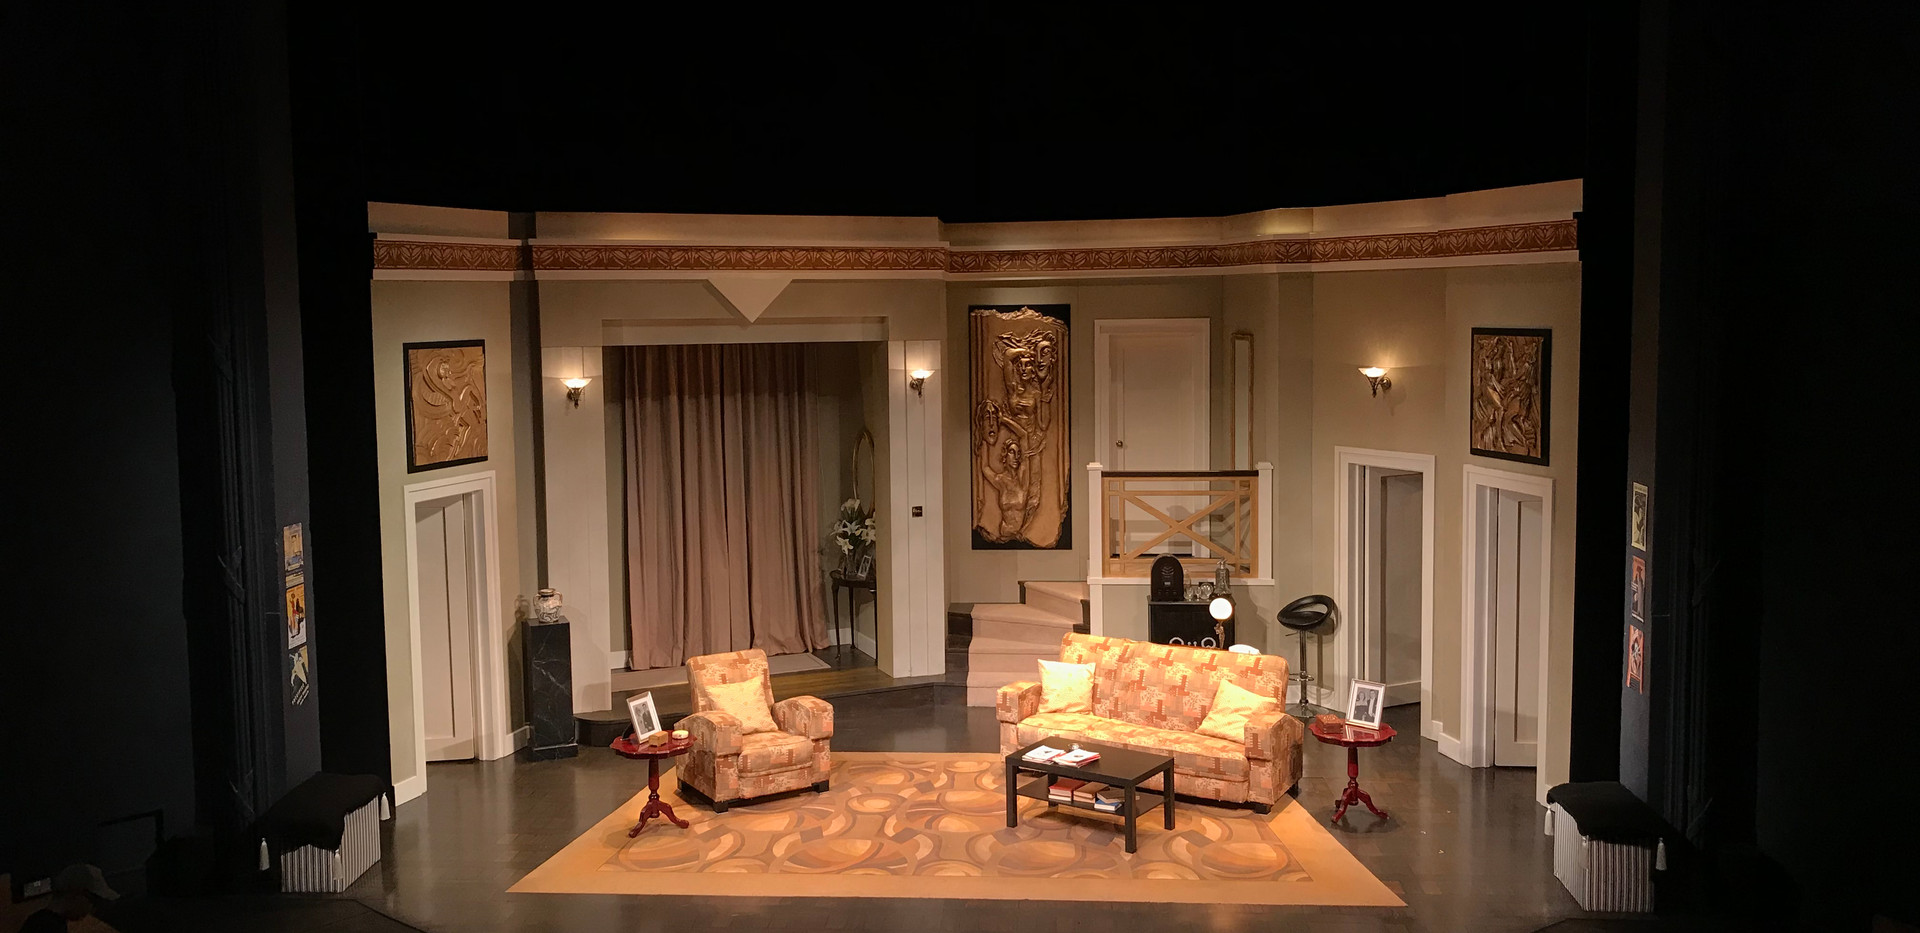 Present Laughter, RCSSD, 2017